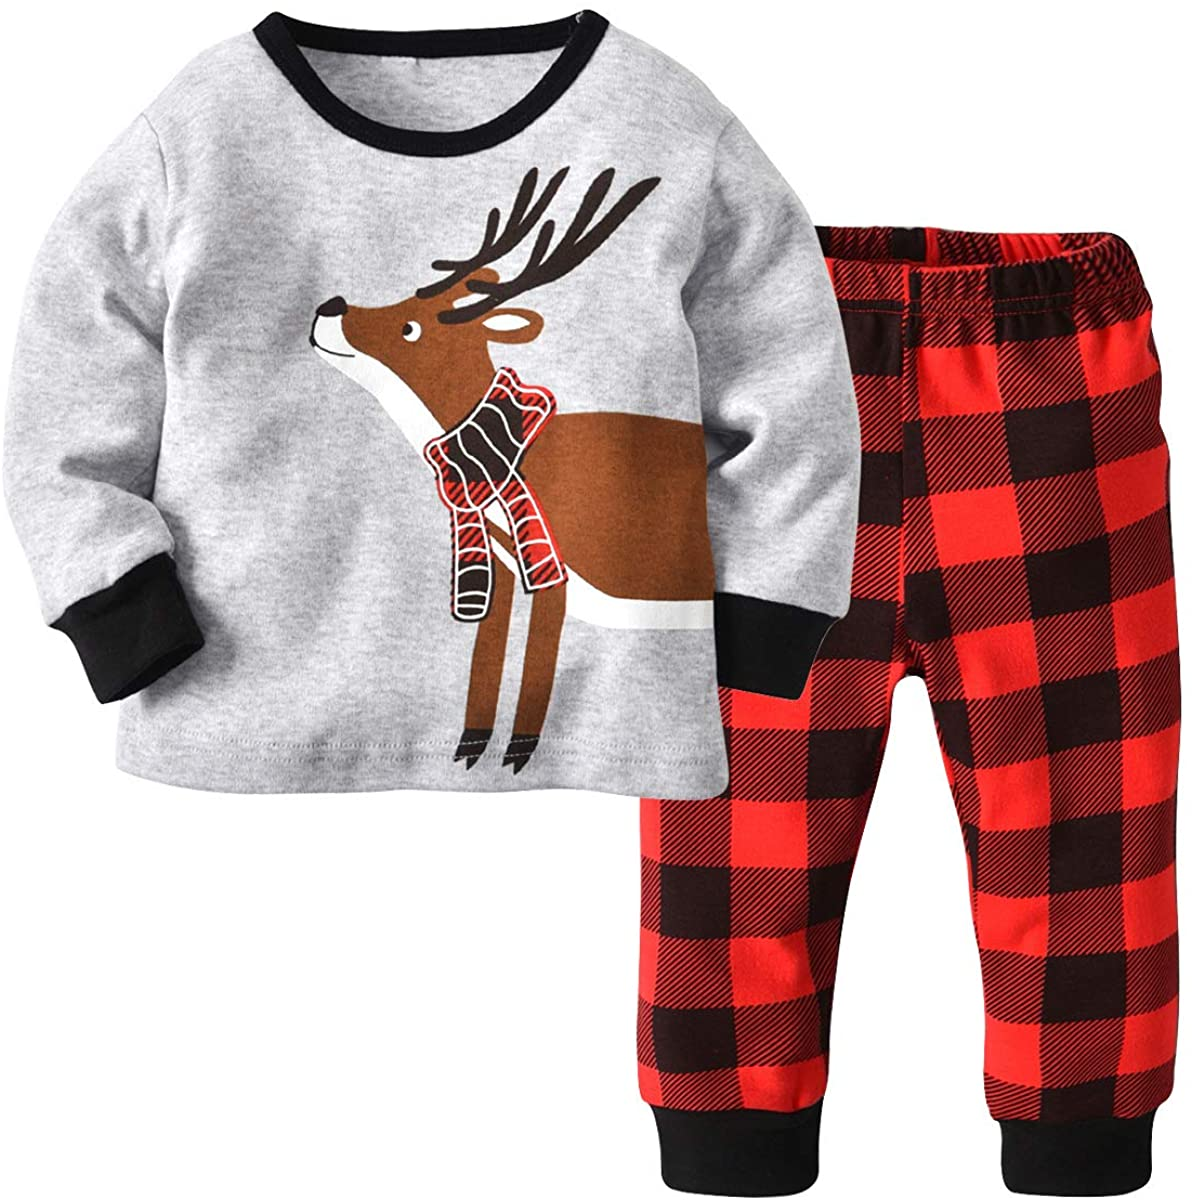 Kids Boys Girls Pajamas Set Long Sleeve Elk Tops+Stripe Pants Pjs Set